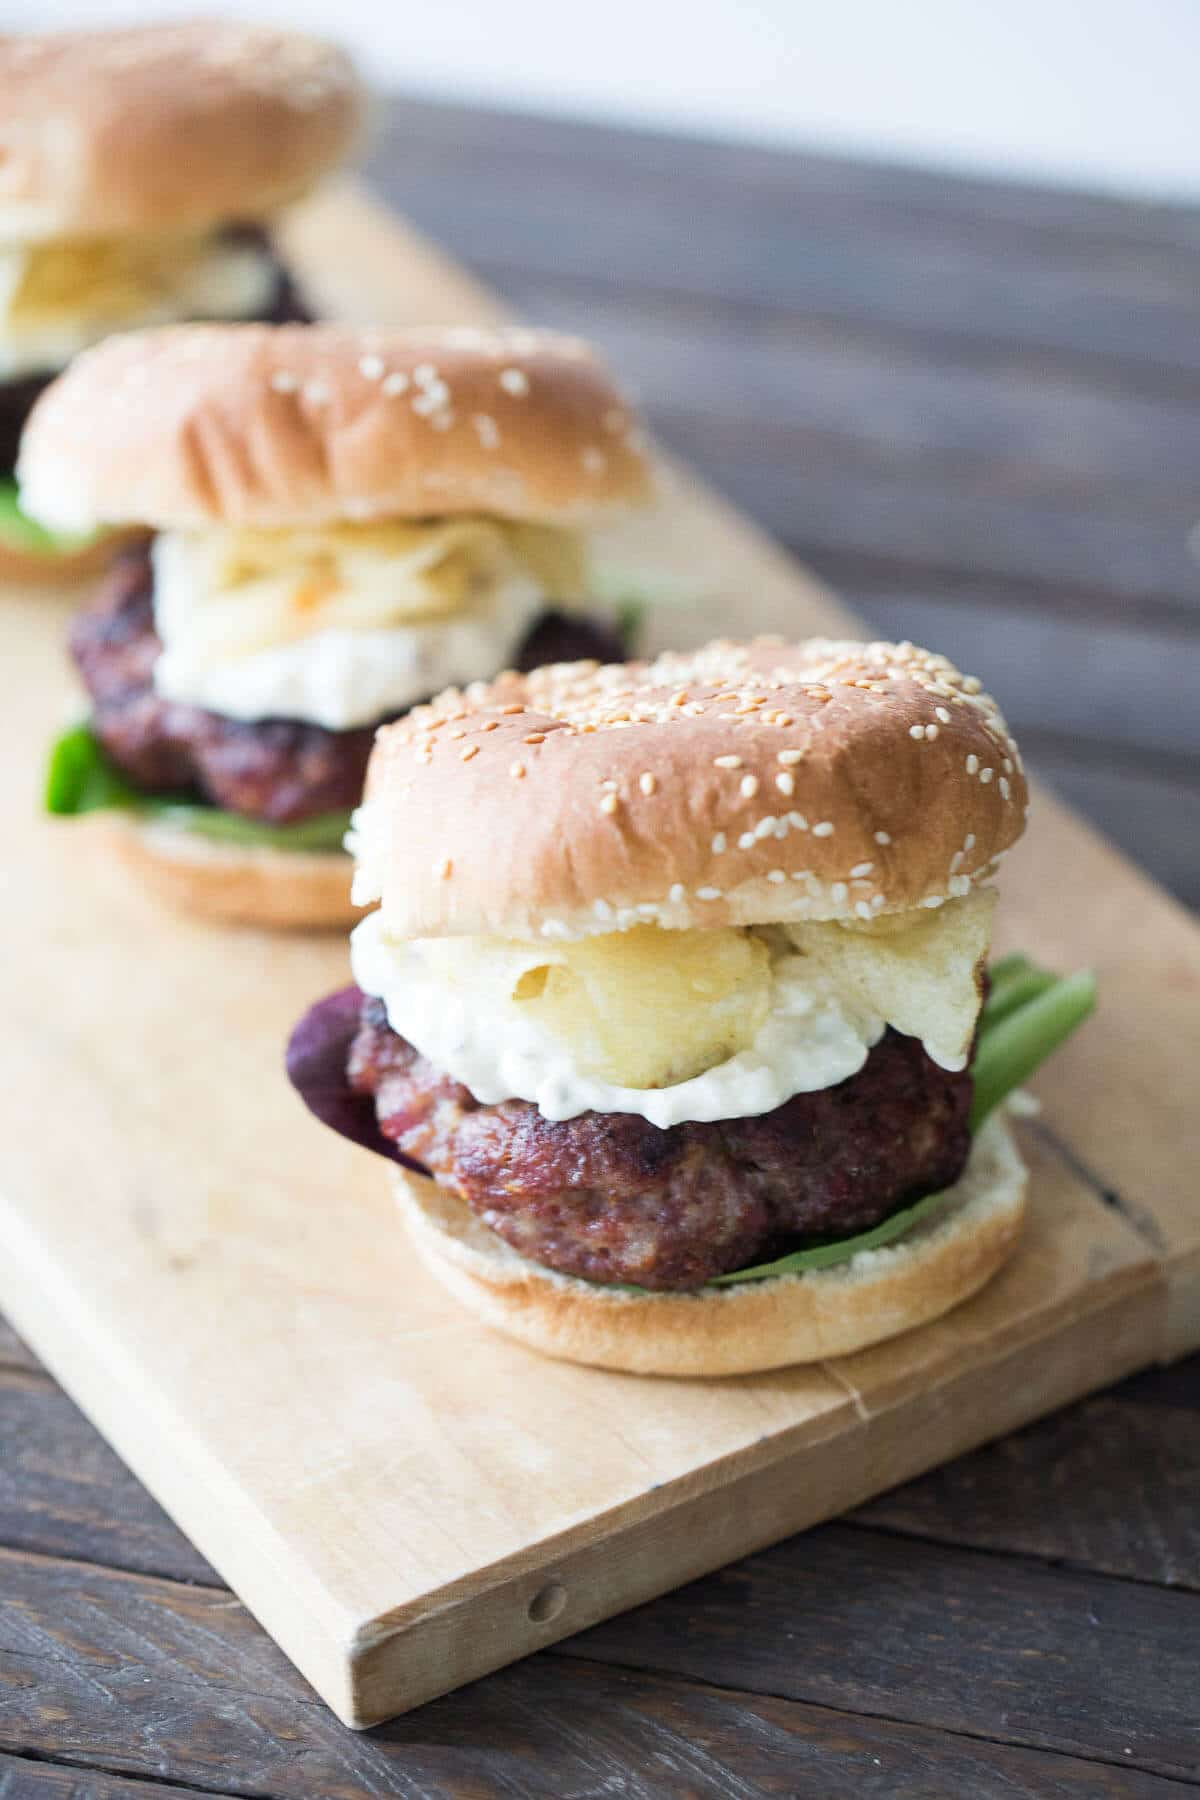 A close up of burgers sitting on top of a wooden cutting board